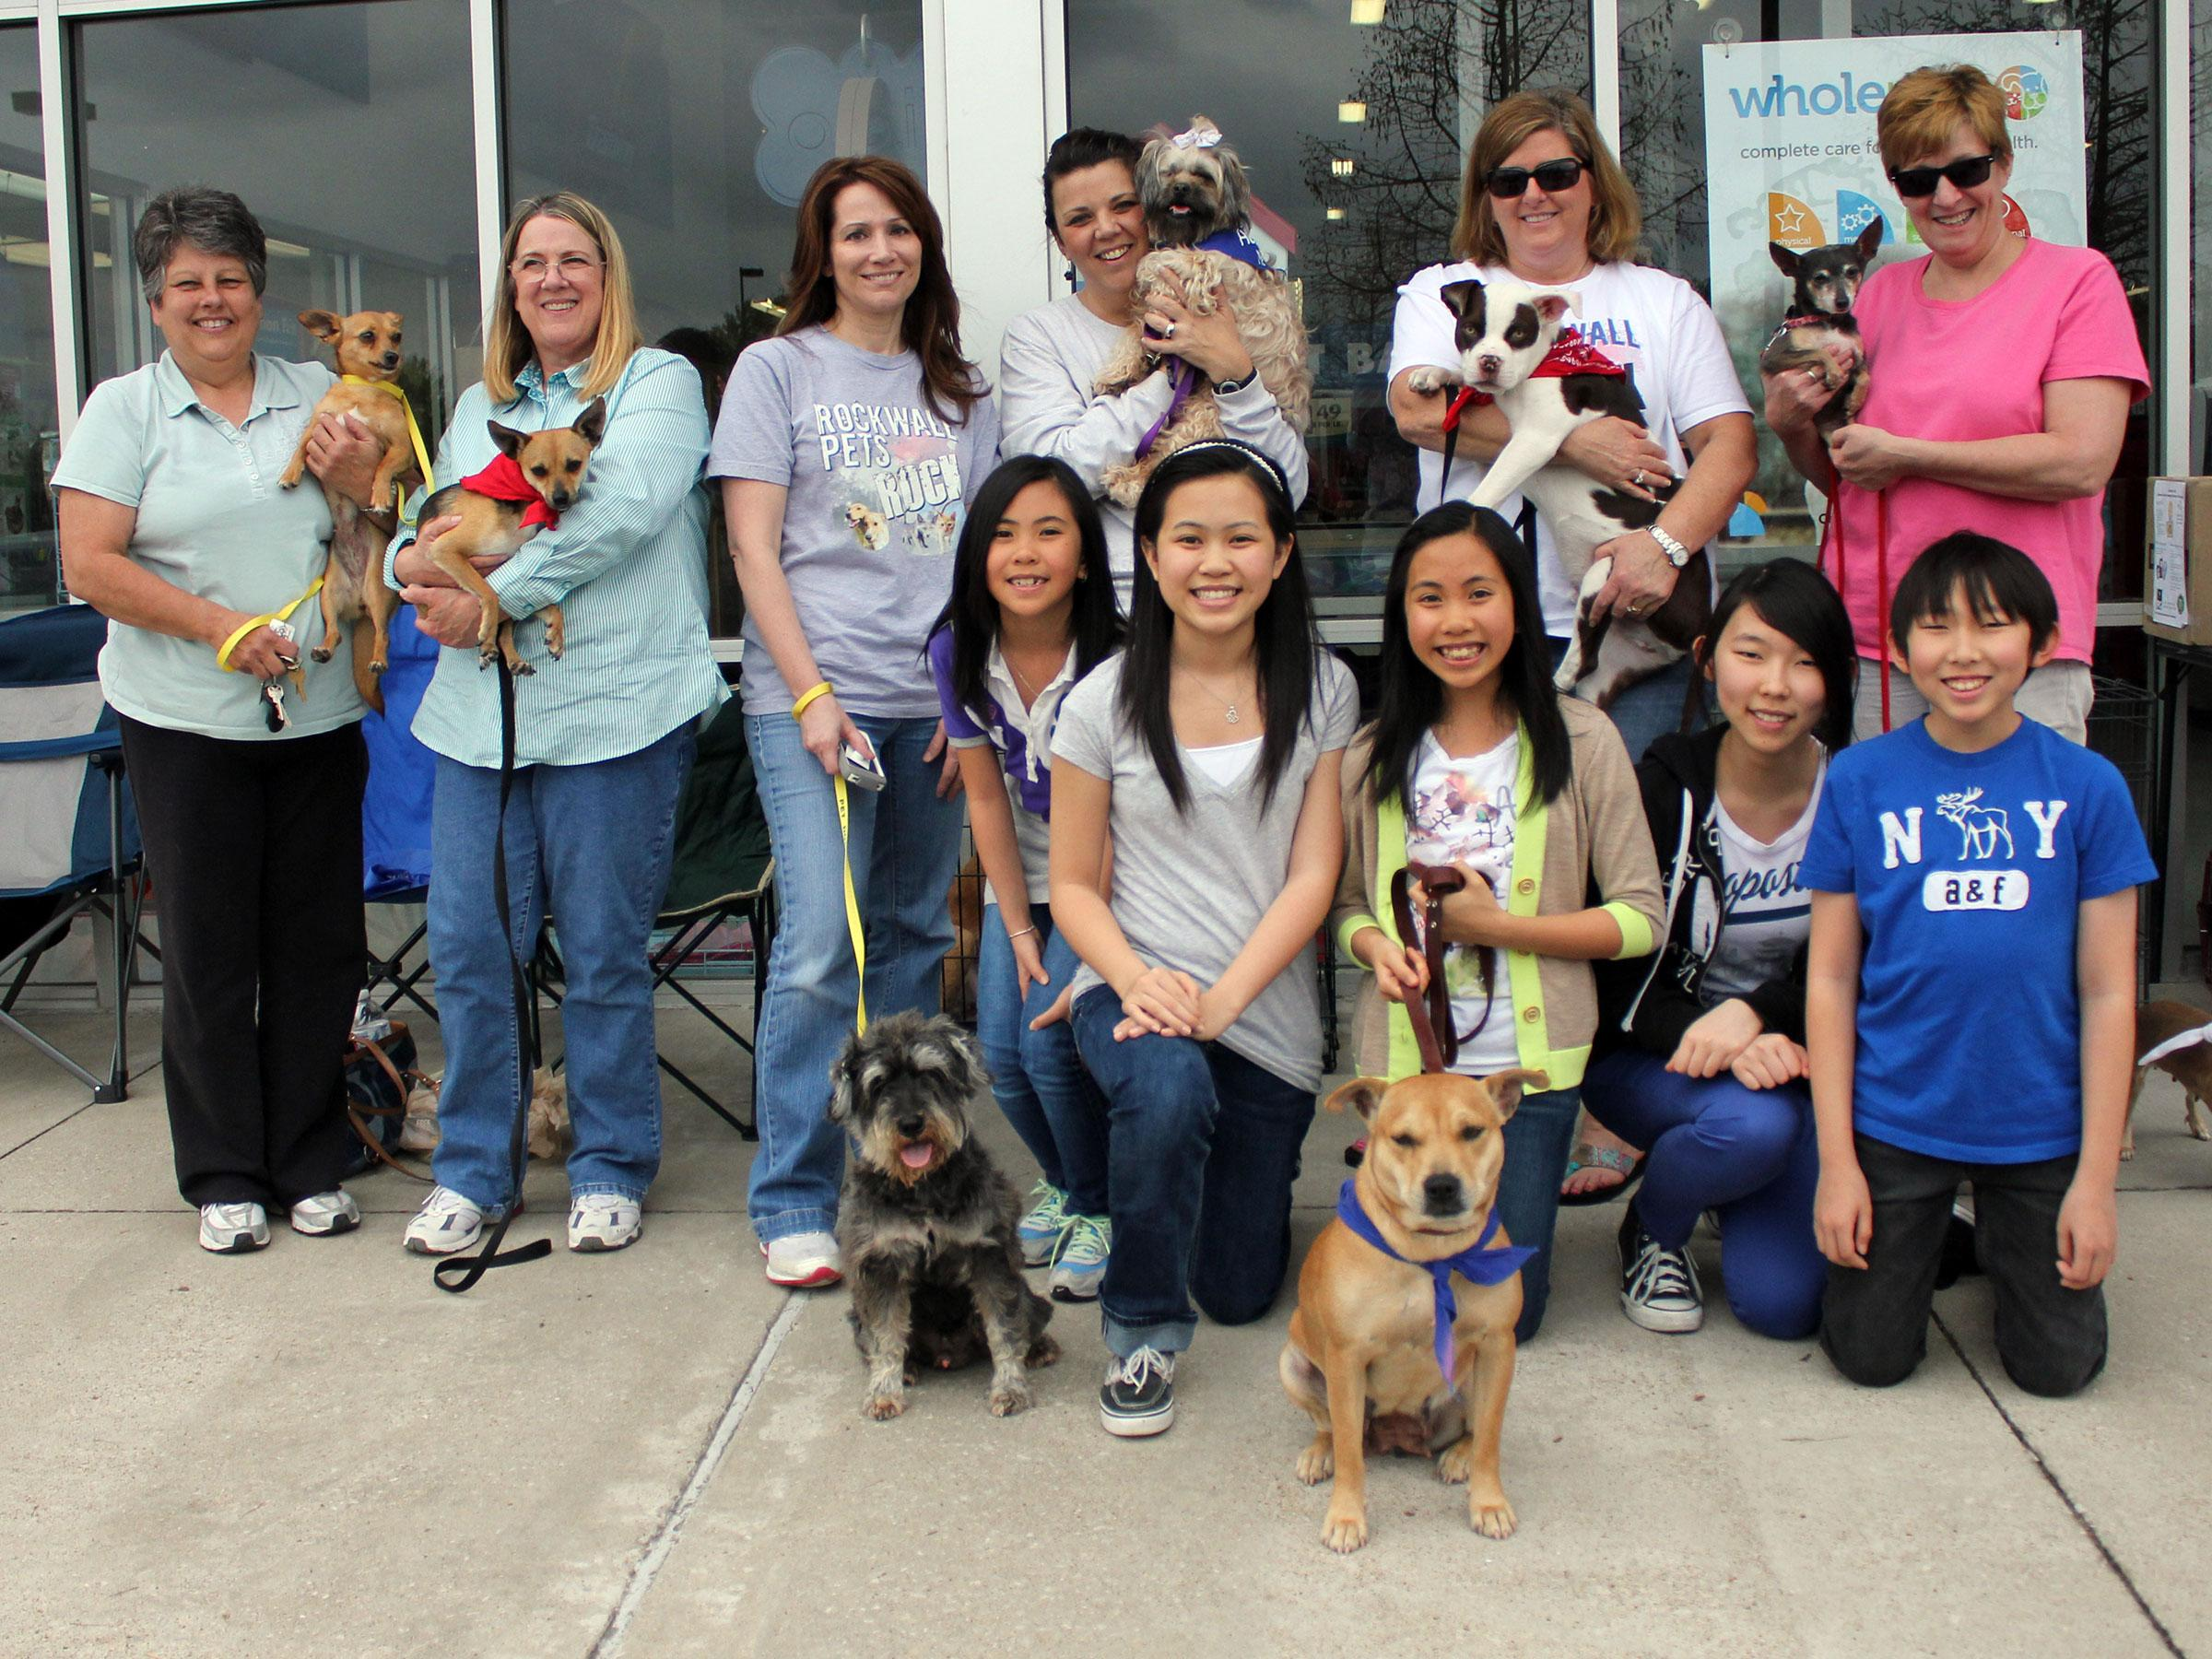 Student concert helps homeless pets to the tune of $600